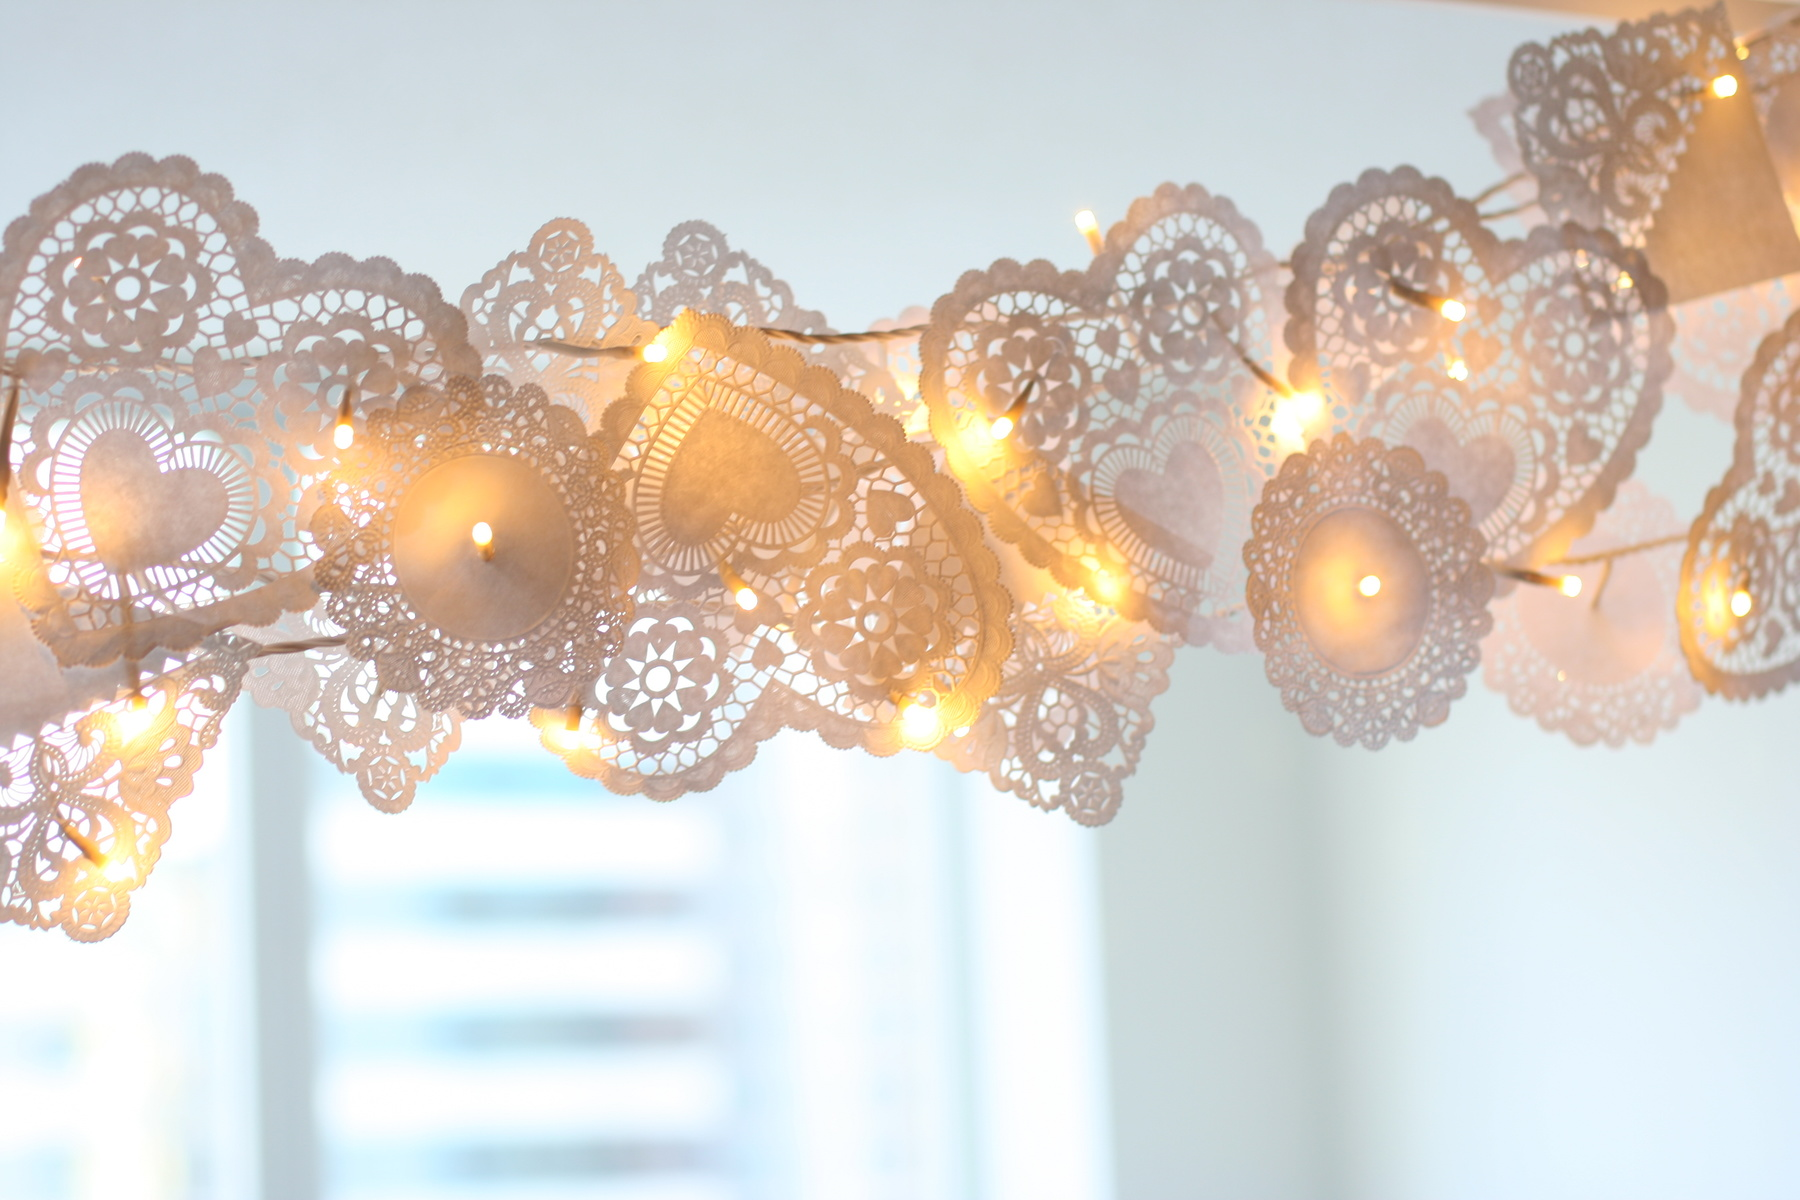 Christmas decor: Garlands